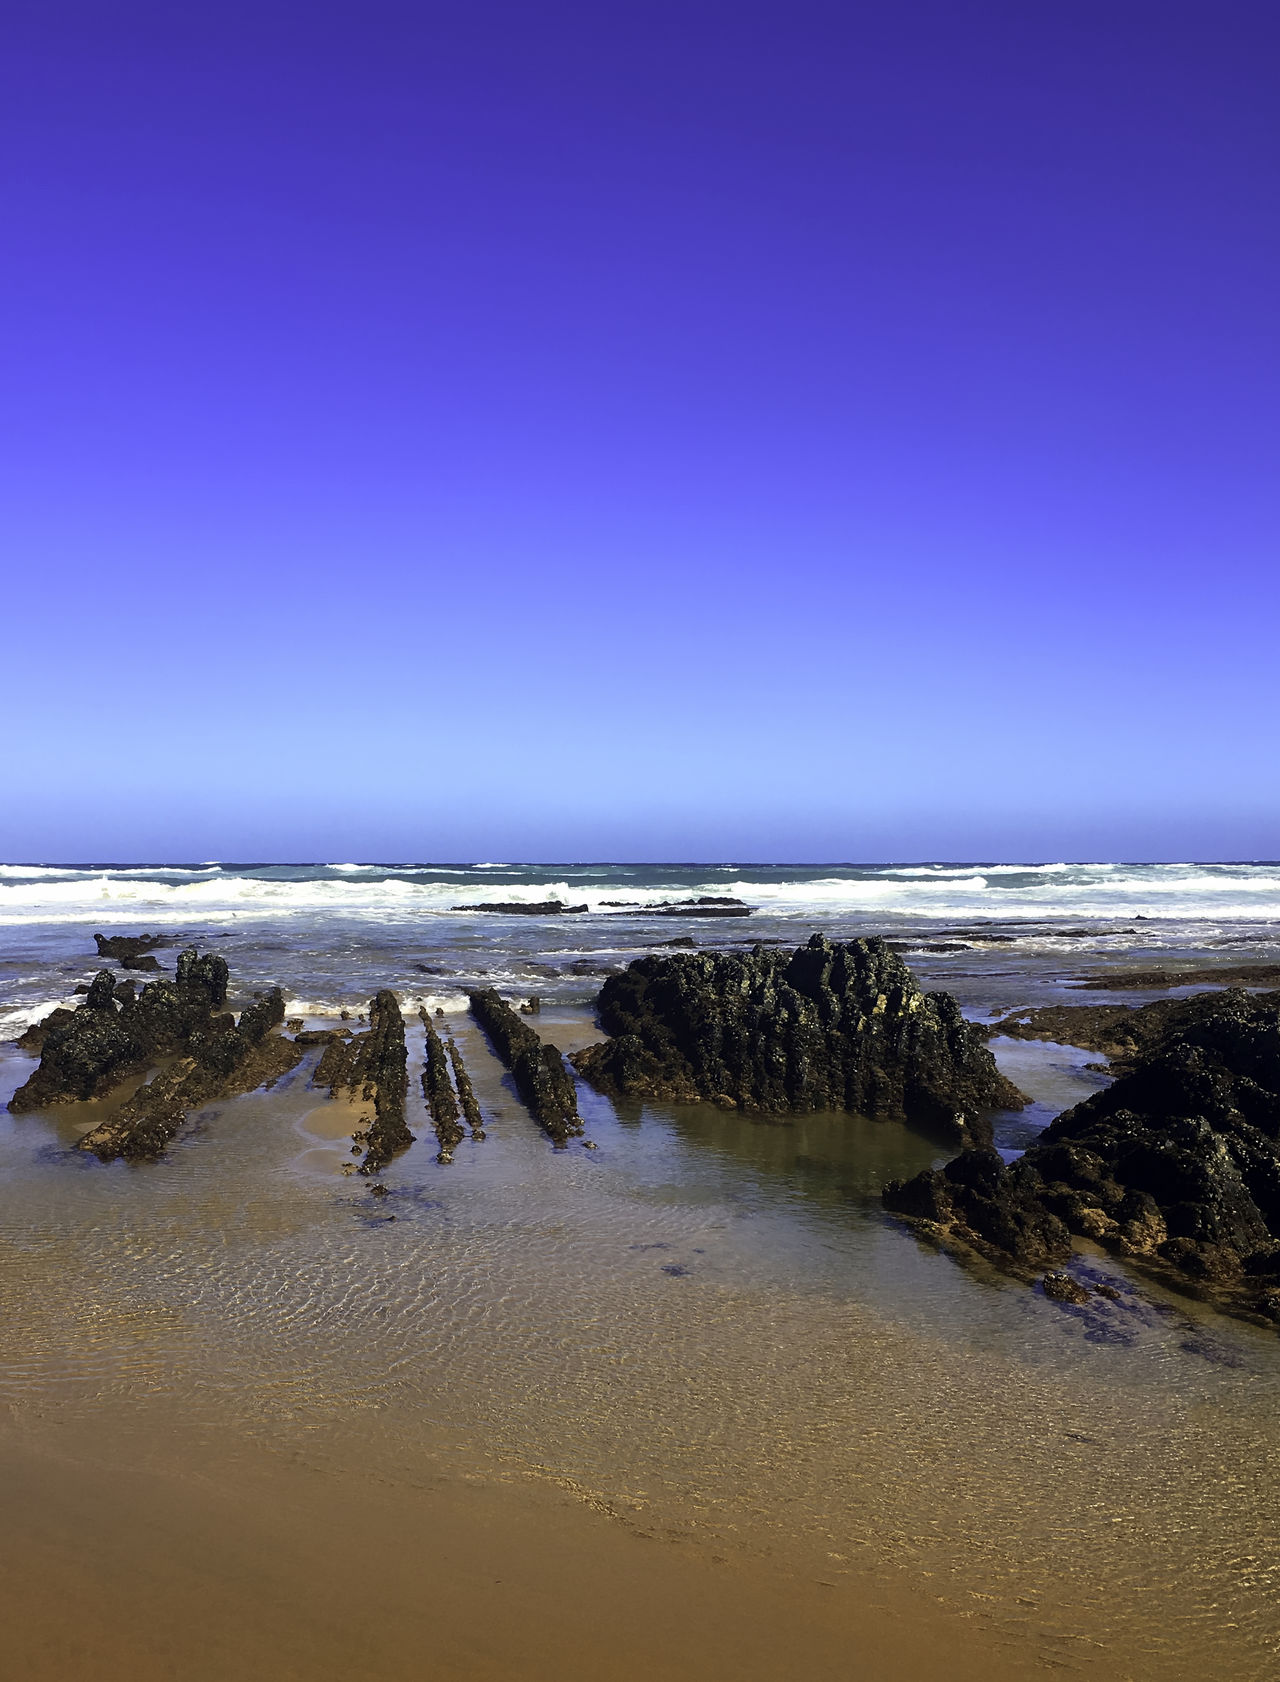 Fels am Strand Al Aljezur Beach Beauty In Nature Blue Clear Sky Coastal Feature Horizon Over Water Idyllic Majestic Nature Portugal Rocks Sand Scenics Sea Seascape Shore Summer Tranquil Scene Travel Travel Destinations Vacations Water